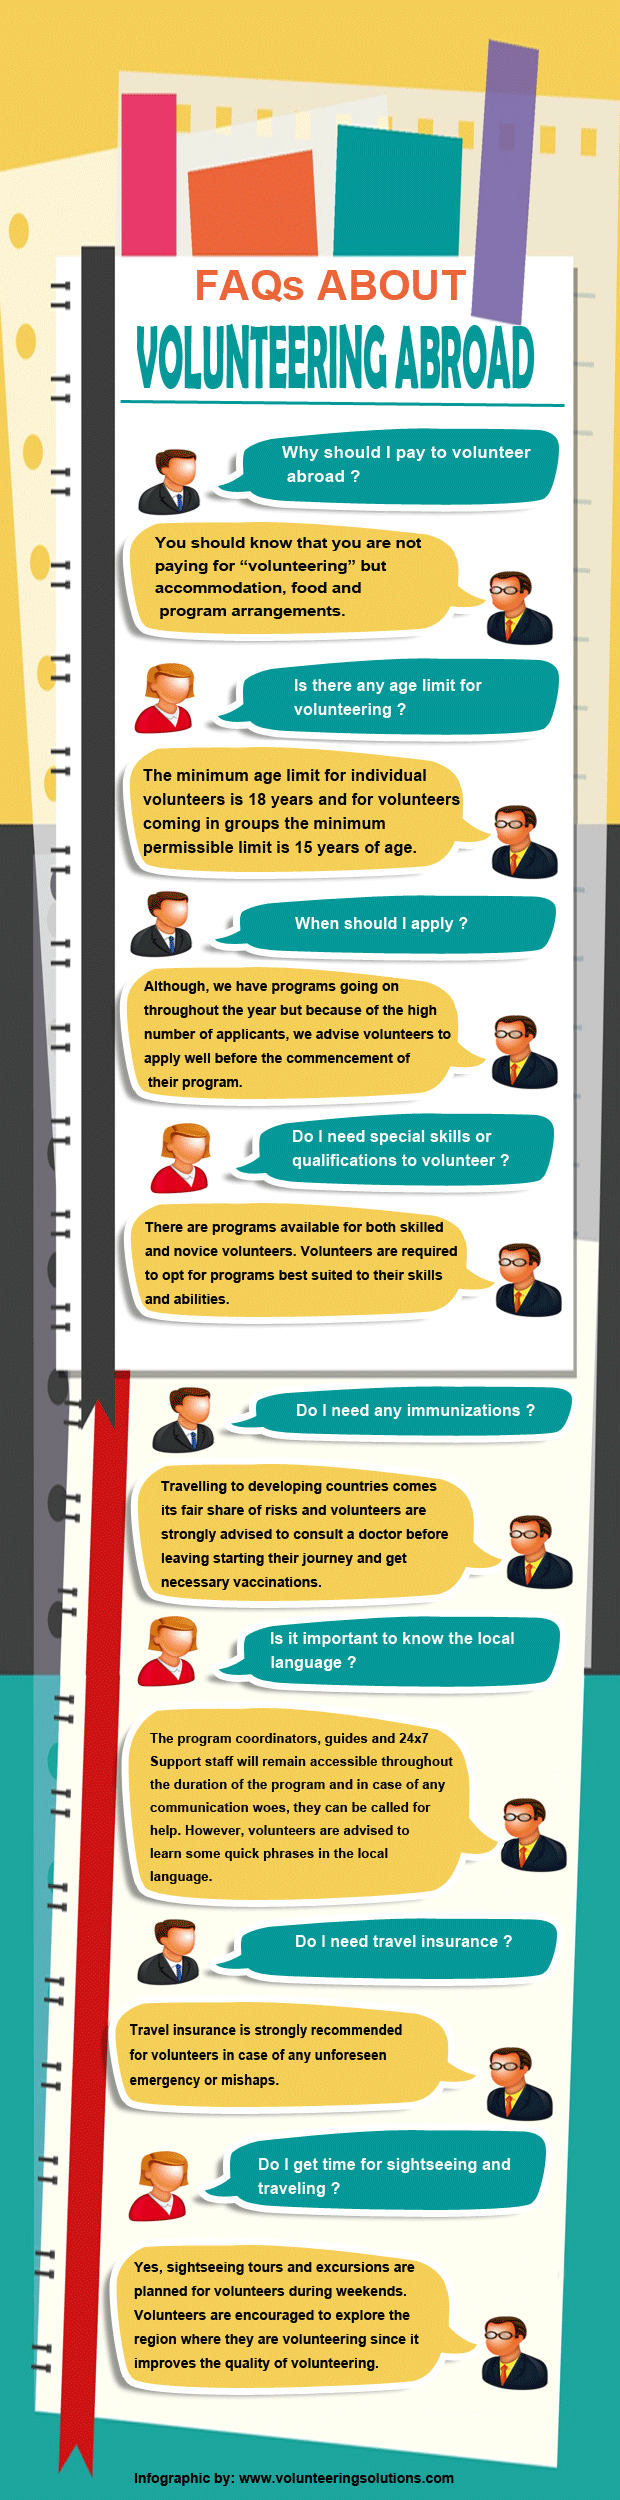 FAQs about volunteering abroad infographic